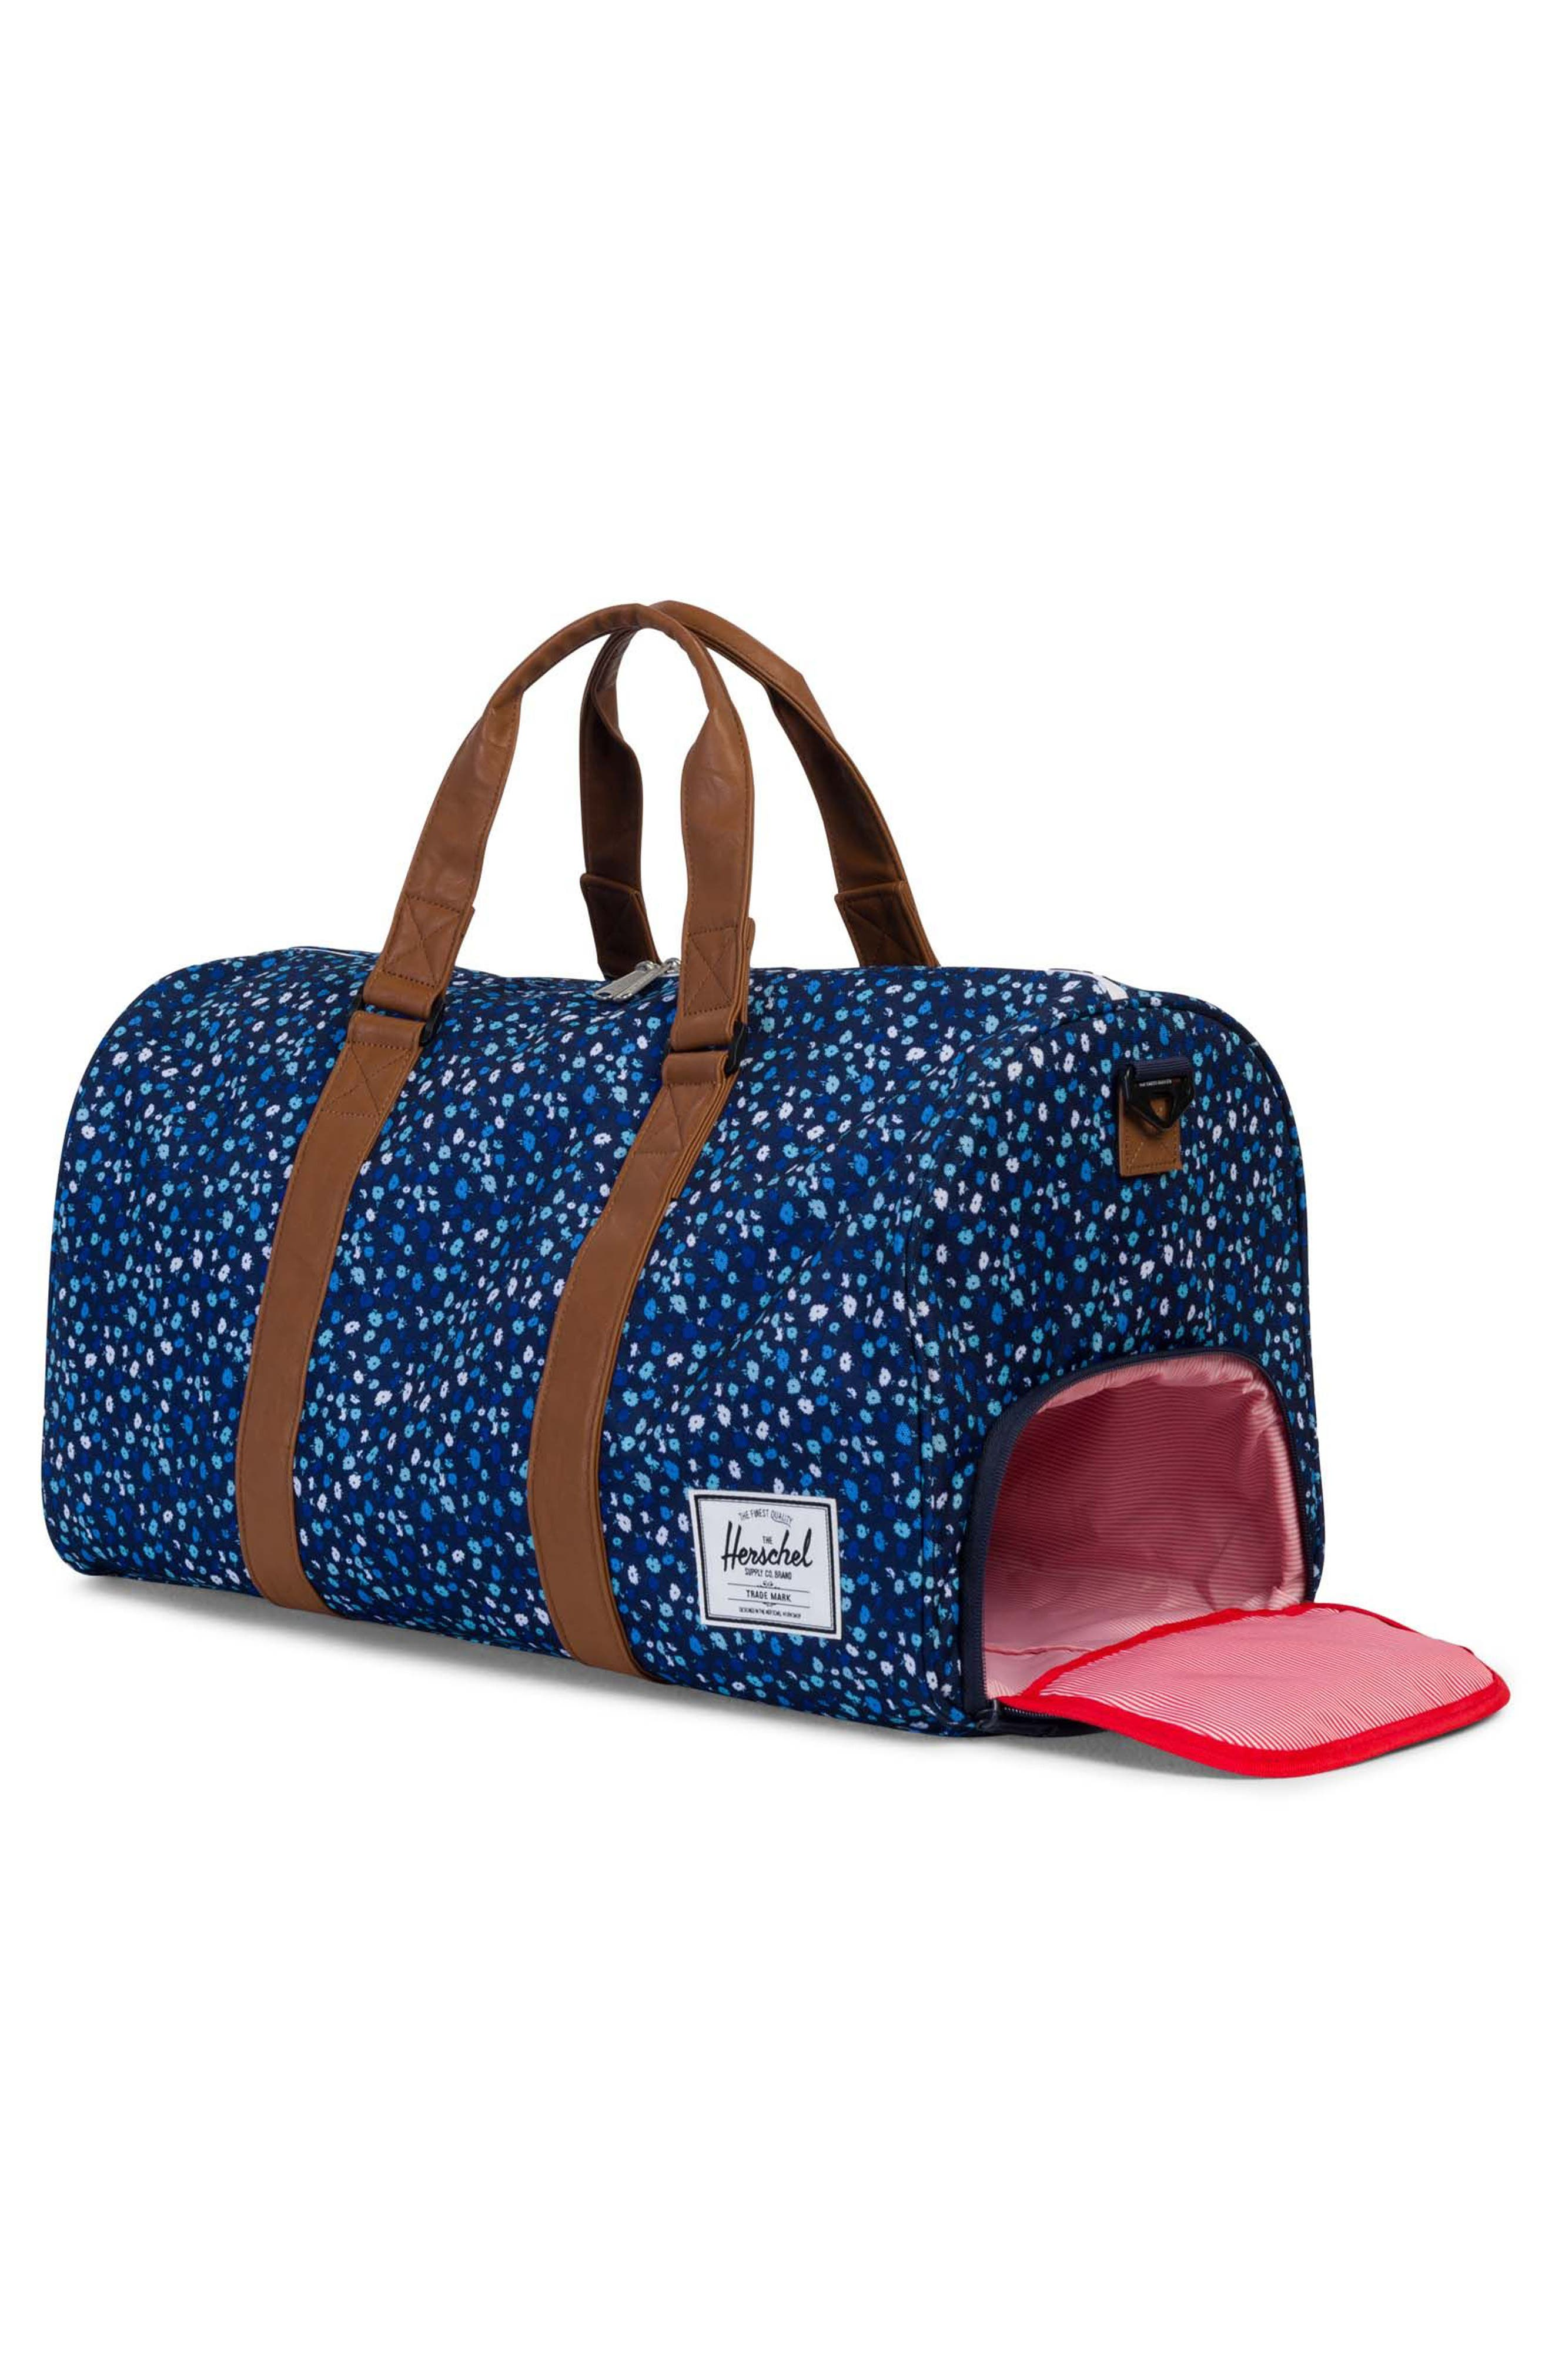 Novel Floral Pattern Duffel Bag,                             Alternate thumbnail 2, color,                             Peacoat Mini Floral